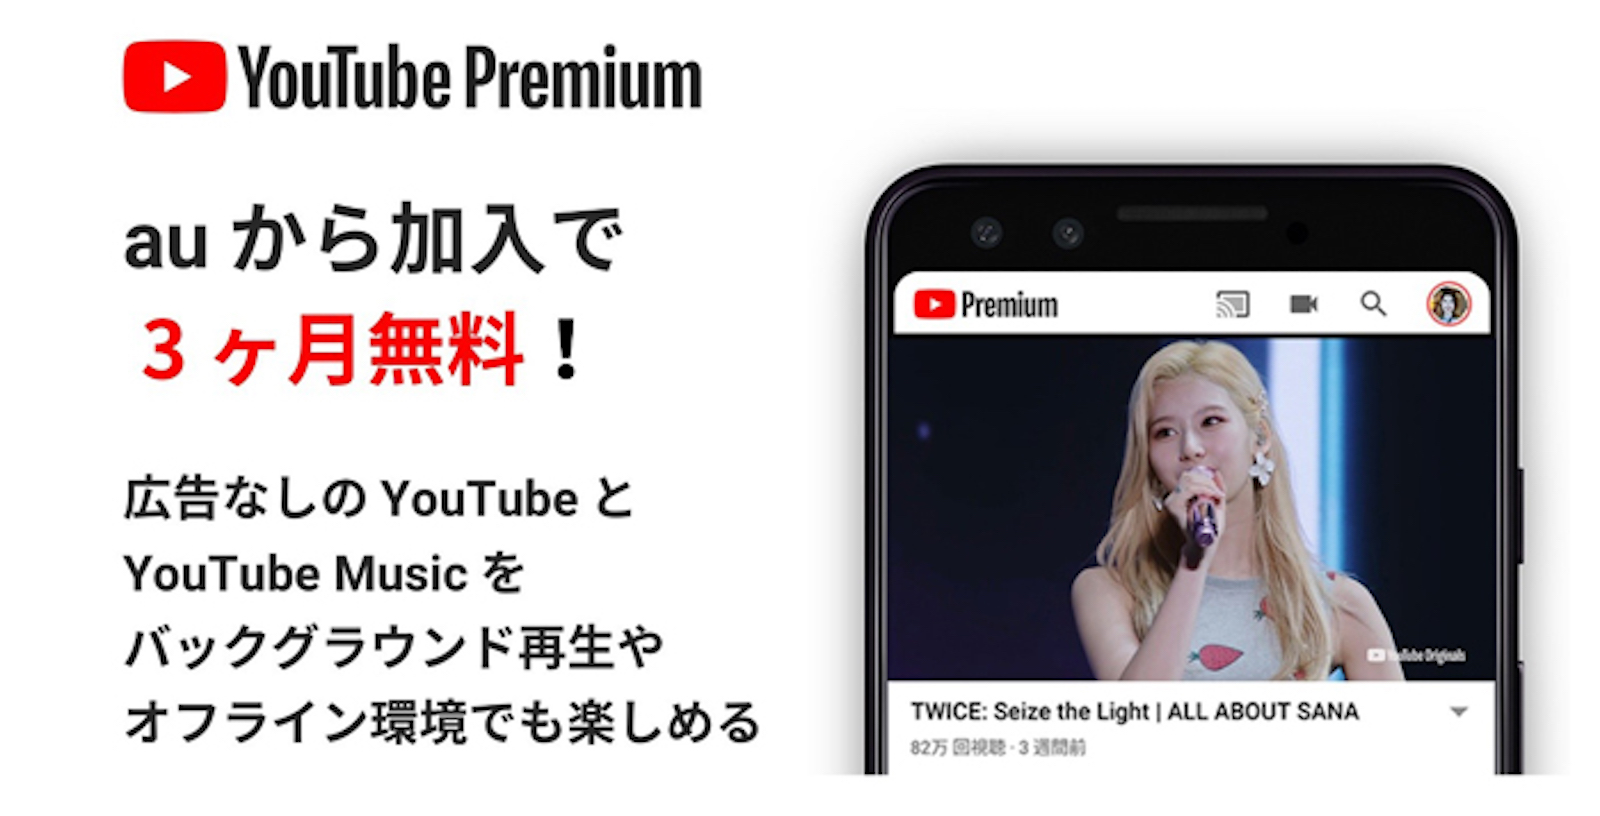 Au user youtube premium